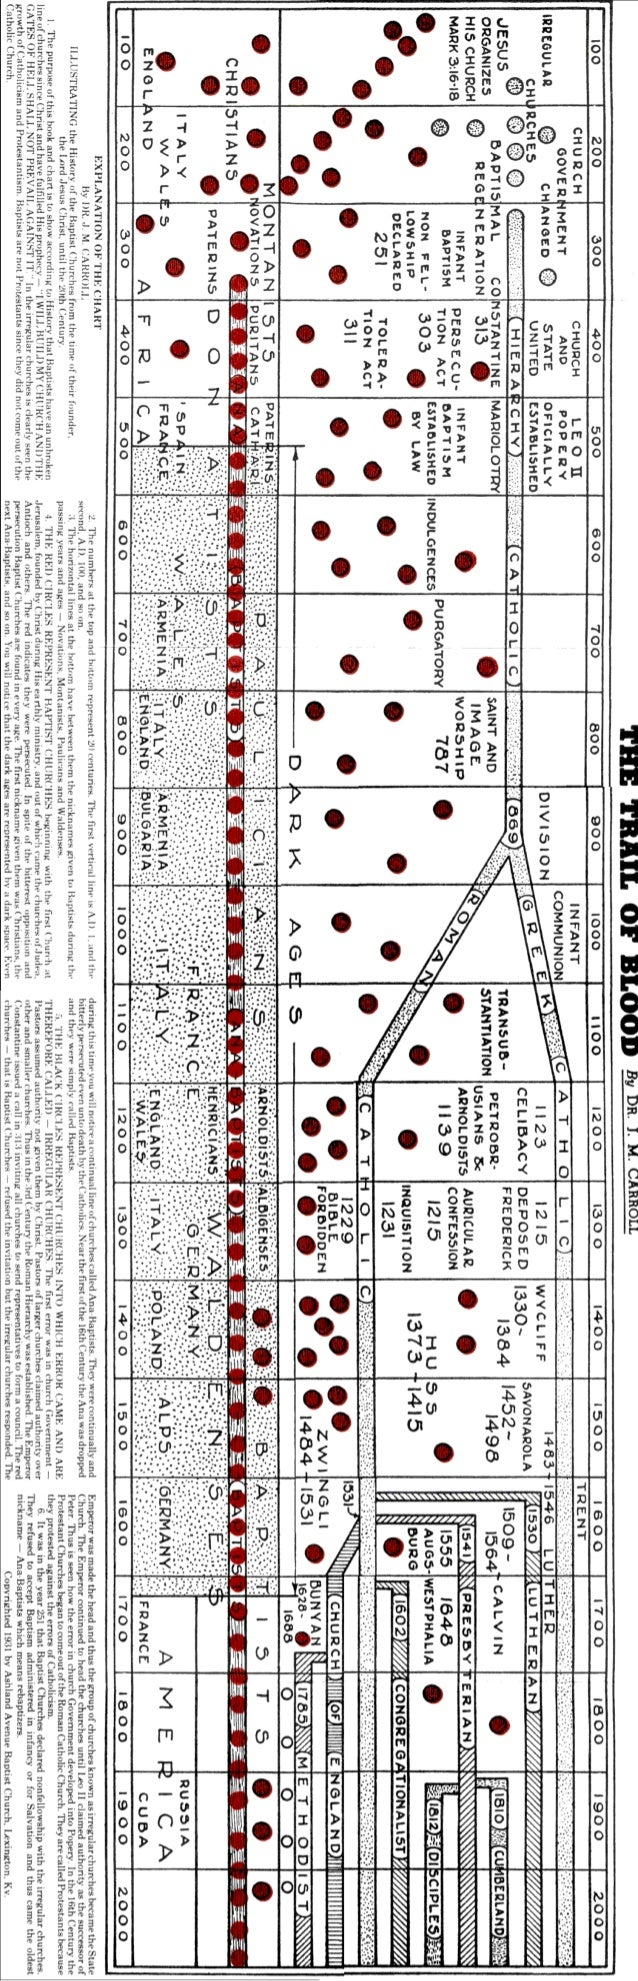 The Trail of Blood: The Chart